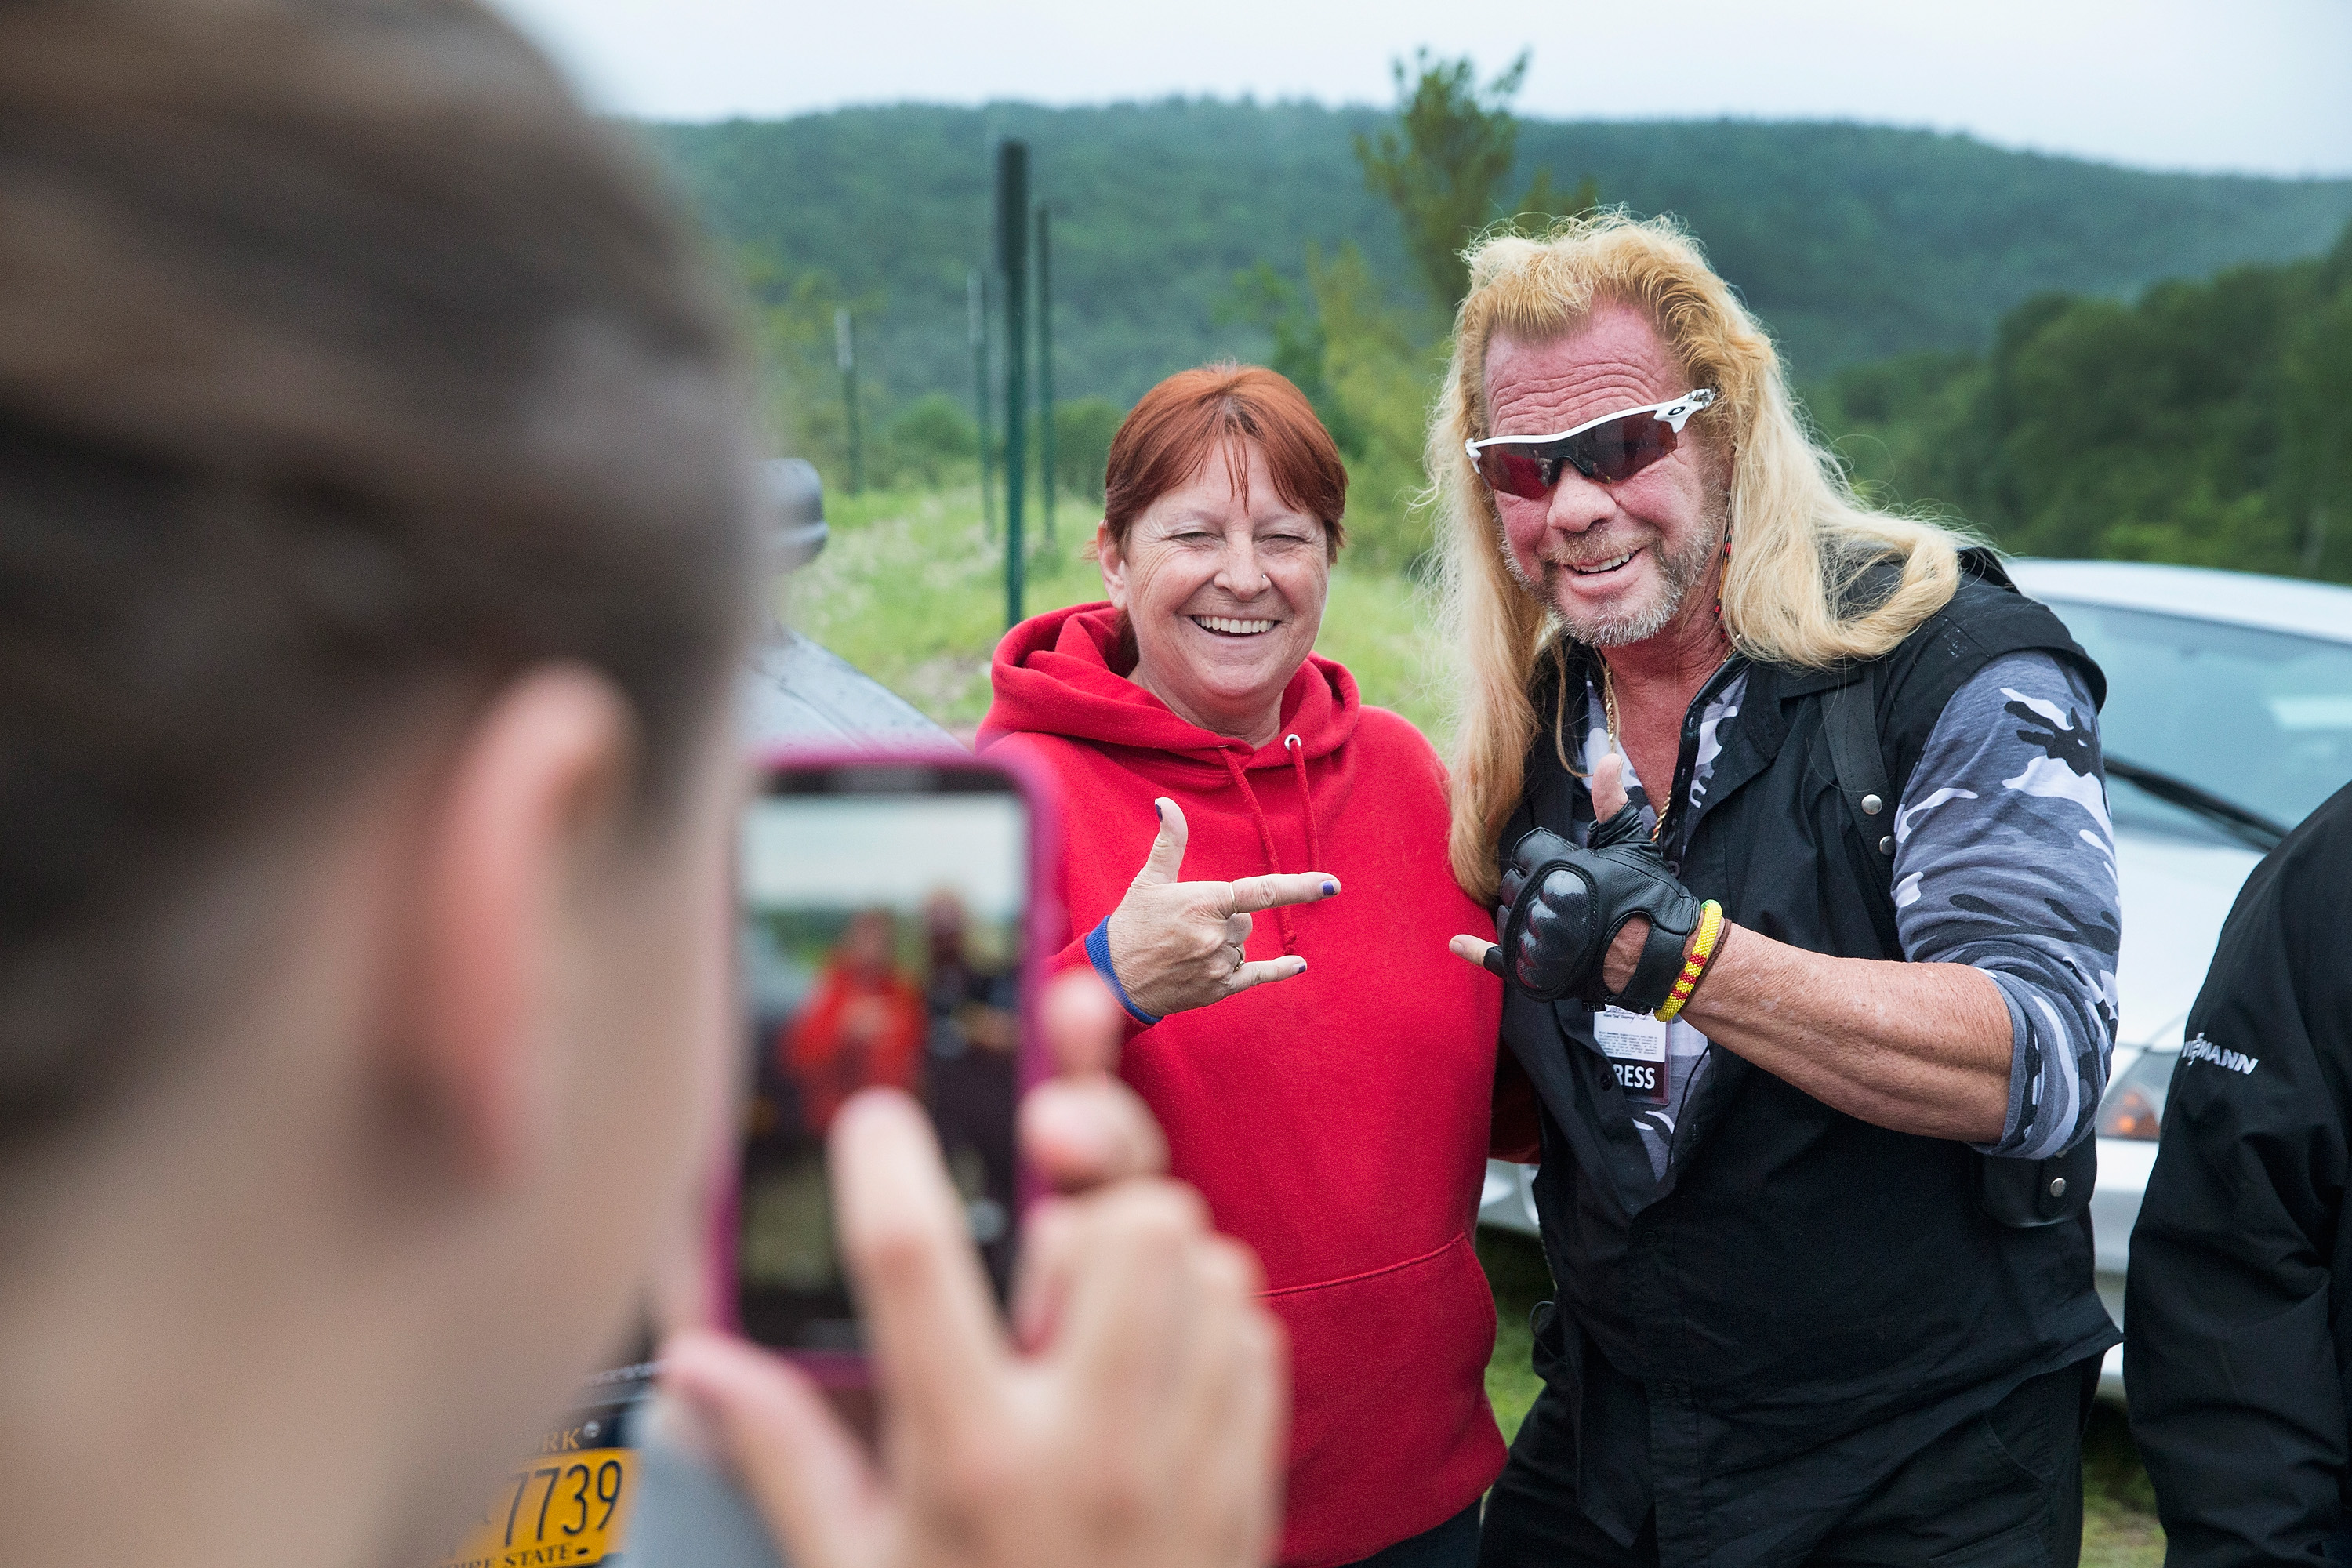 'Dog The Bounty Hunter' Shares Photo, Asks For Prayers